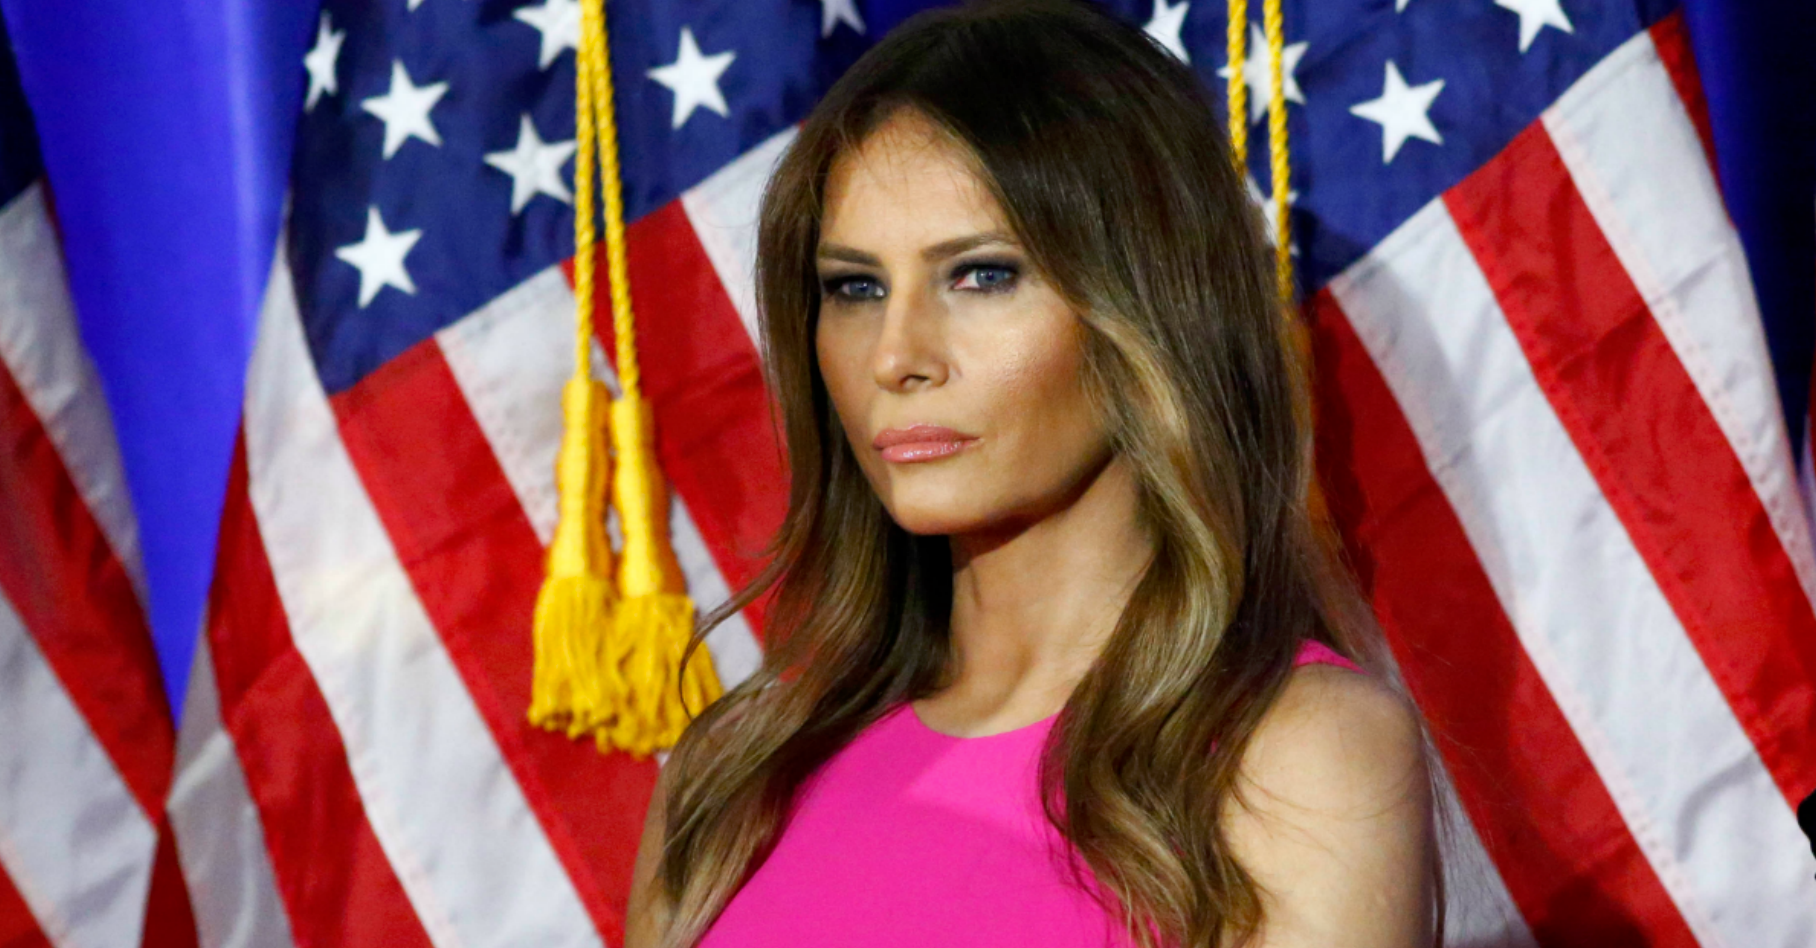 AP Says Melania Trump's Choice of Clothes